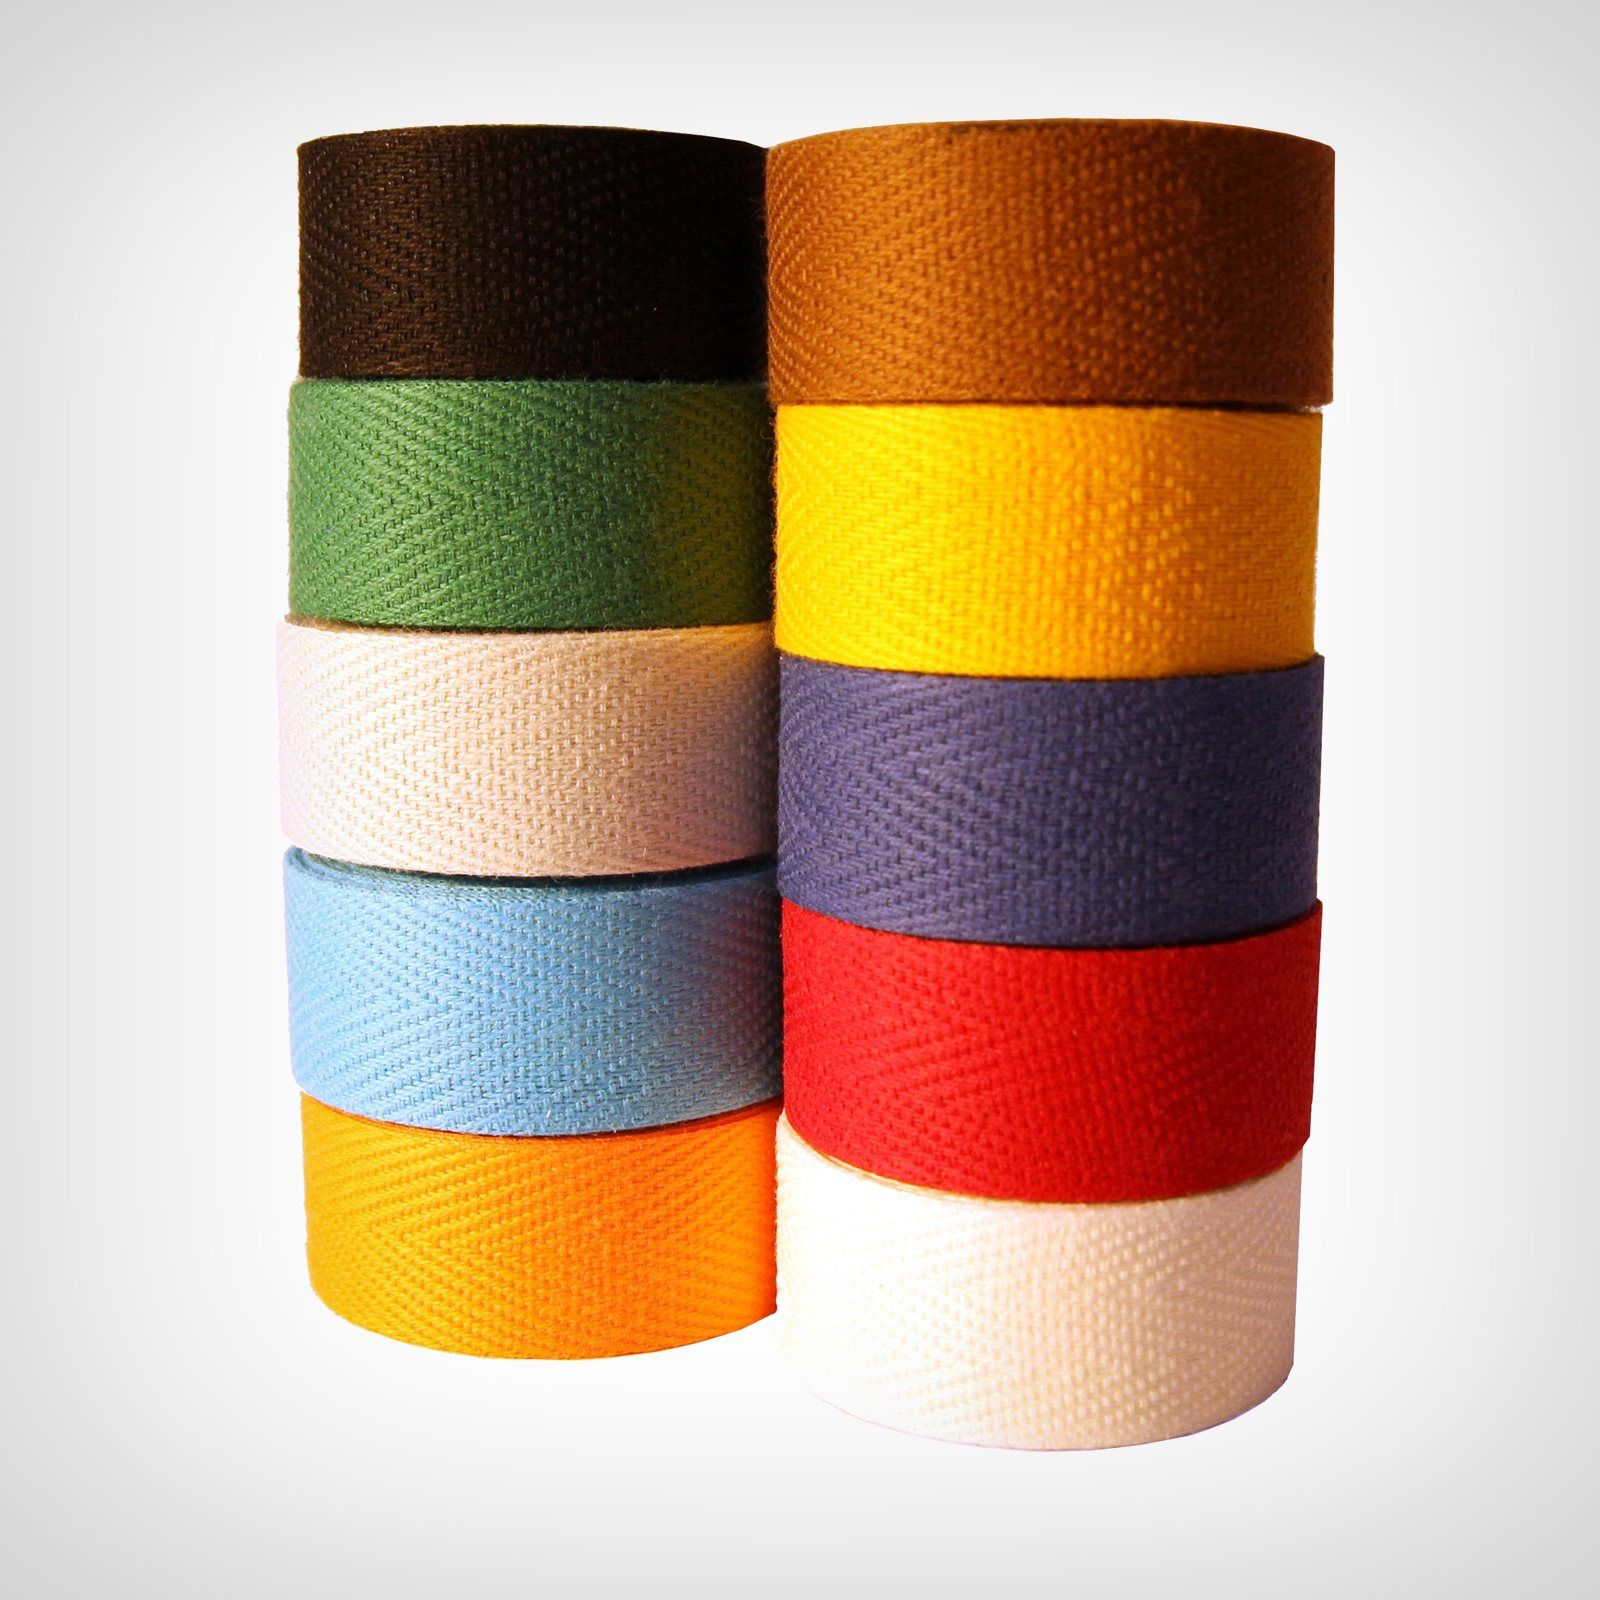 Tressostar Cotton Cloth Handlebar Tape Orange Two